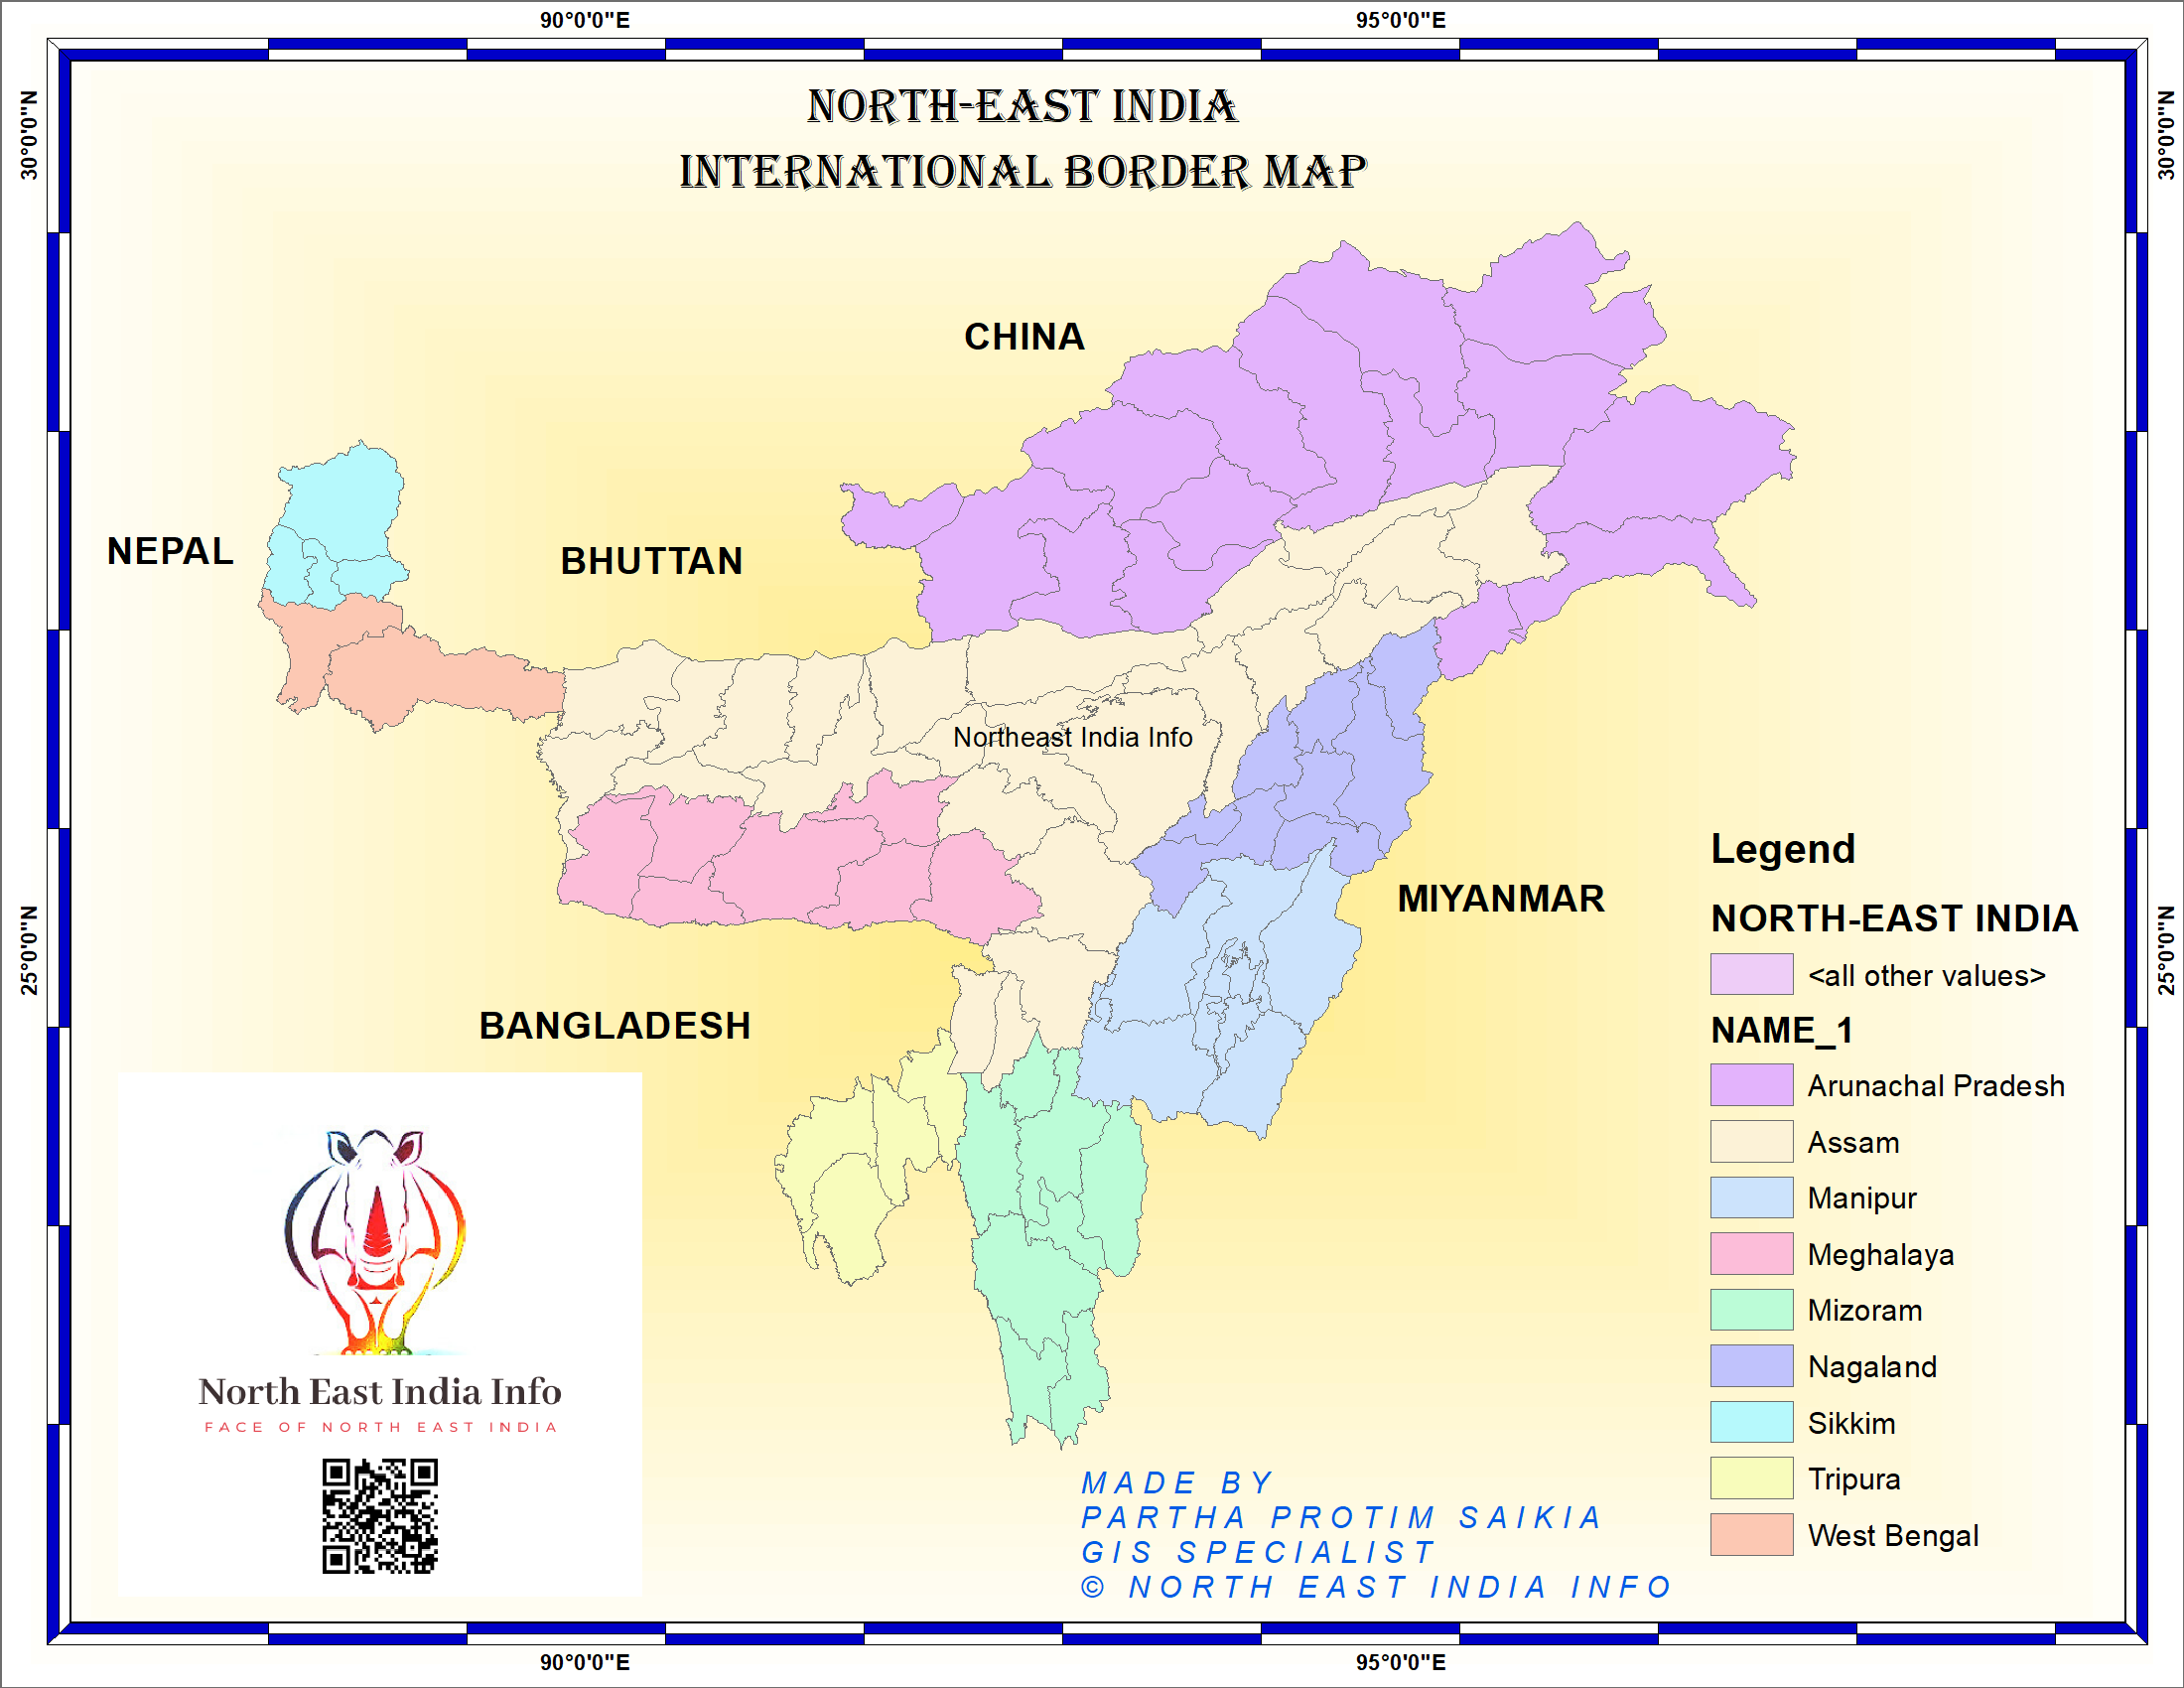 Northeast India Border Map in 2020 Northeast india, Map